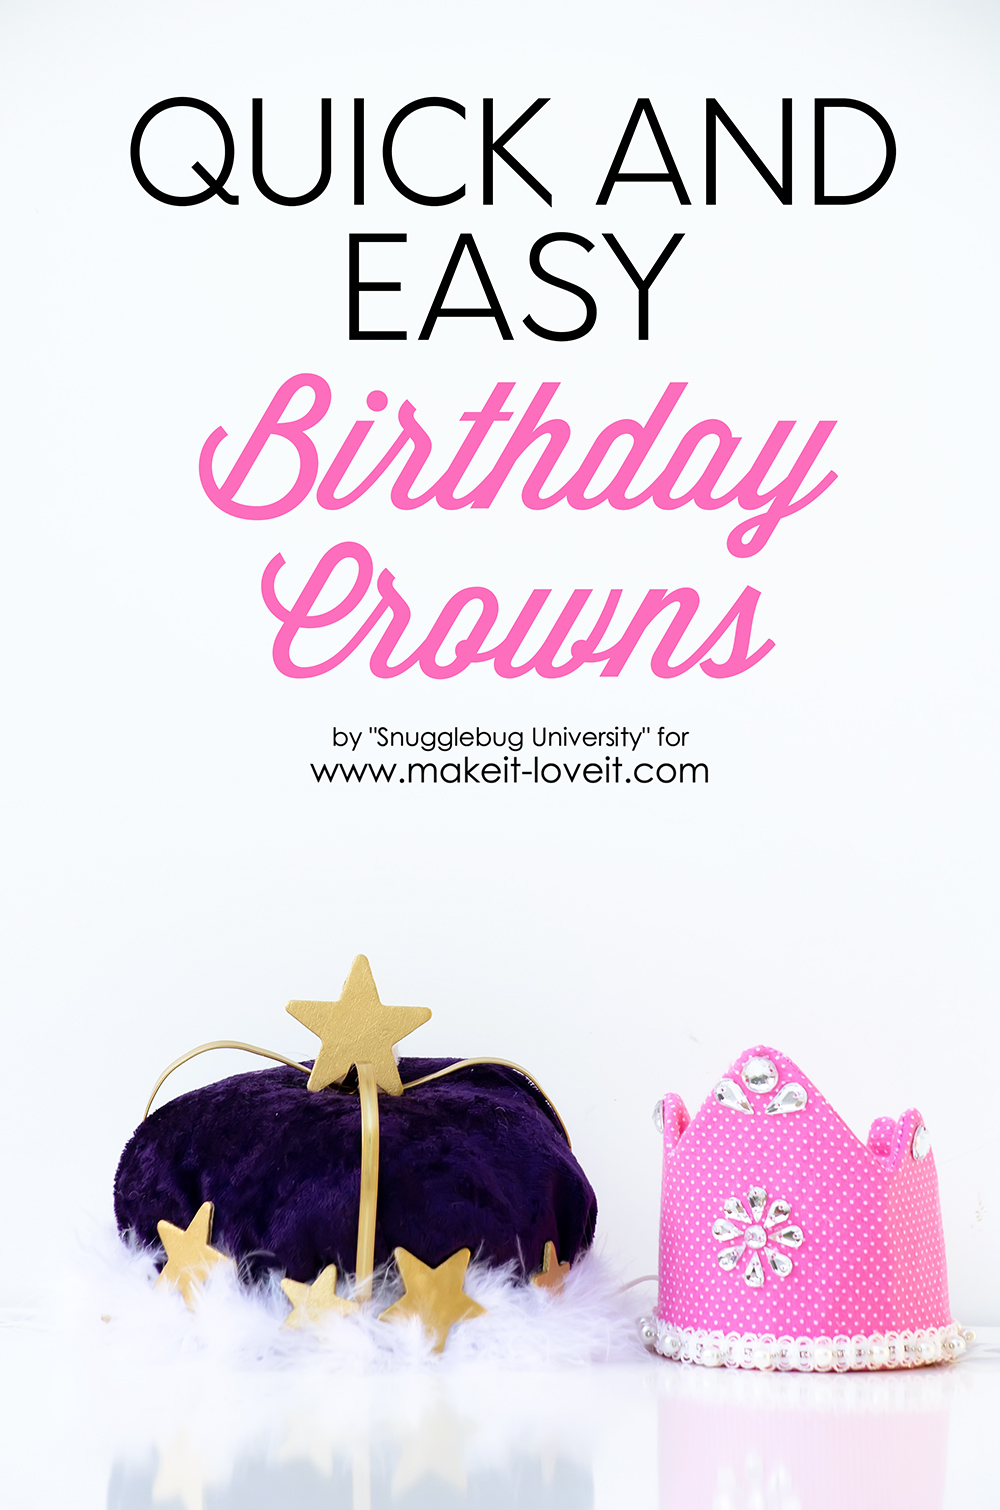 Quick and Easy Birthday Crowns